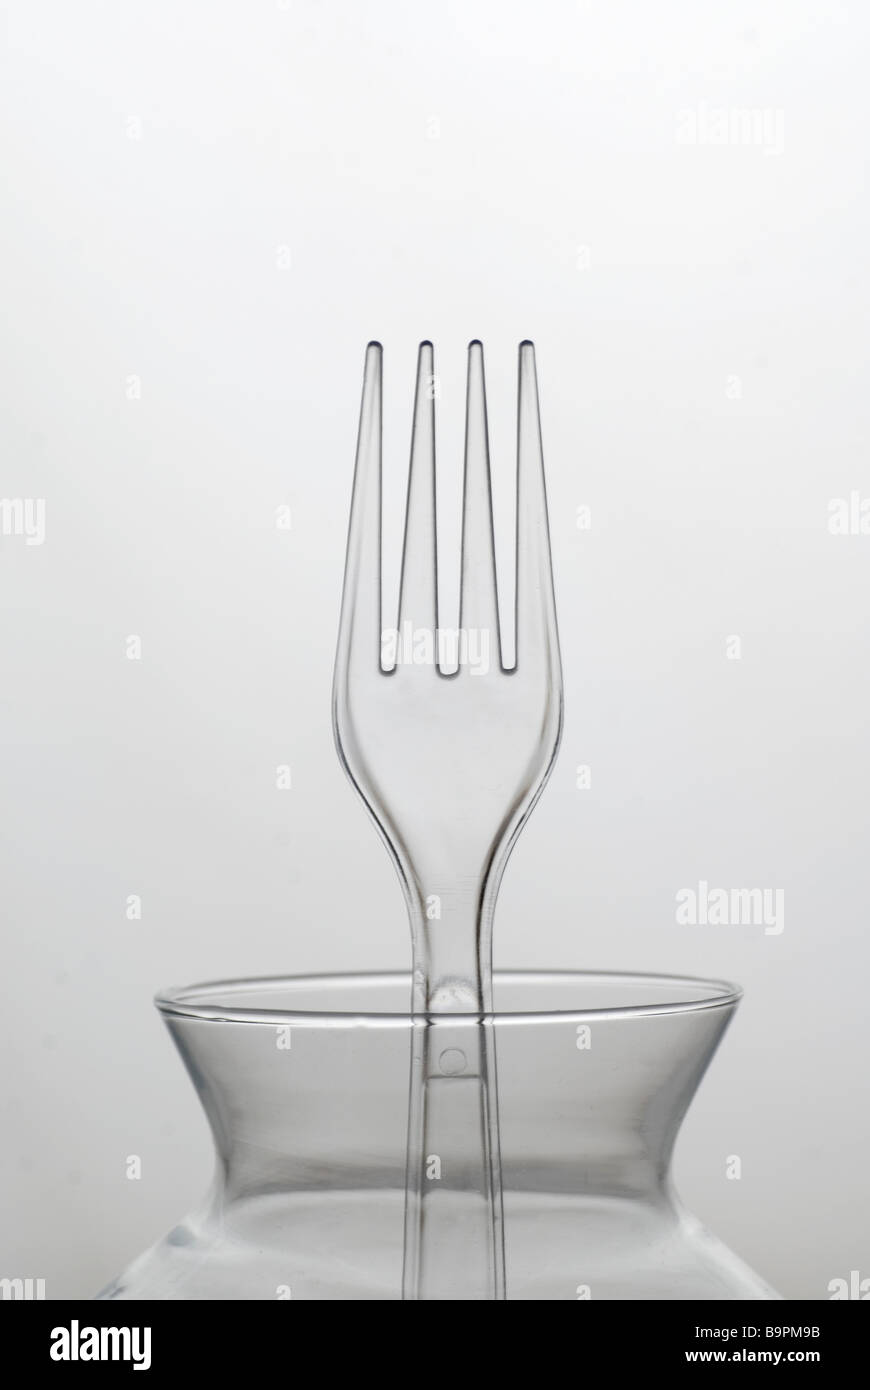 Clear plastic fork against a white background Stock Photo